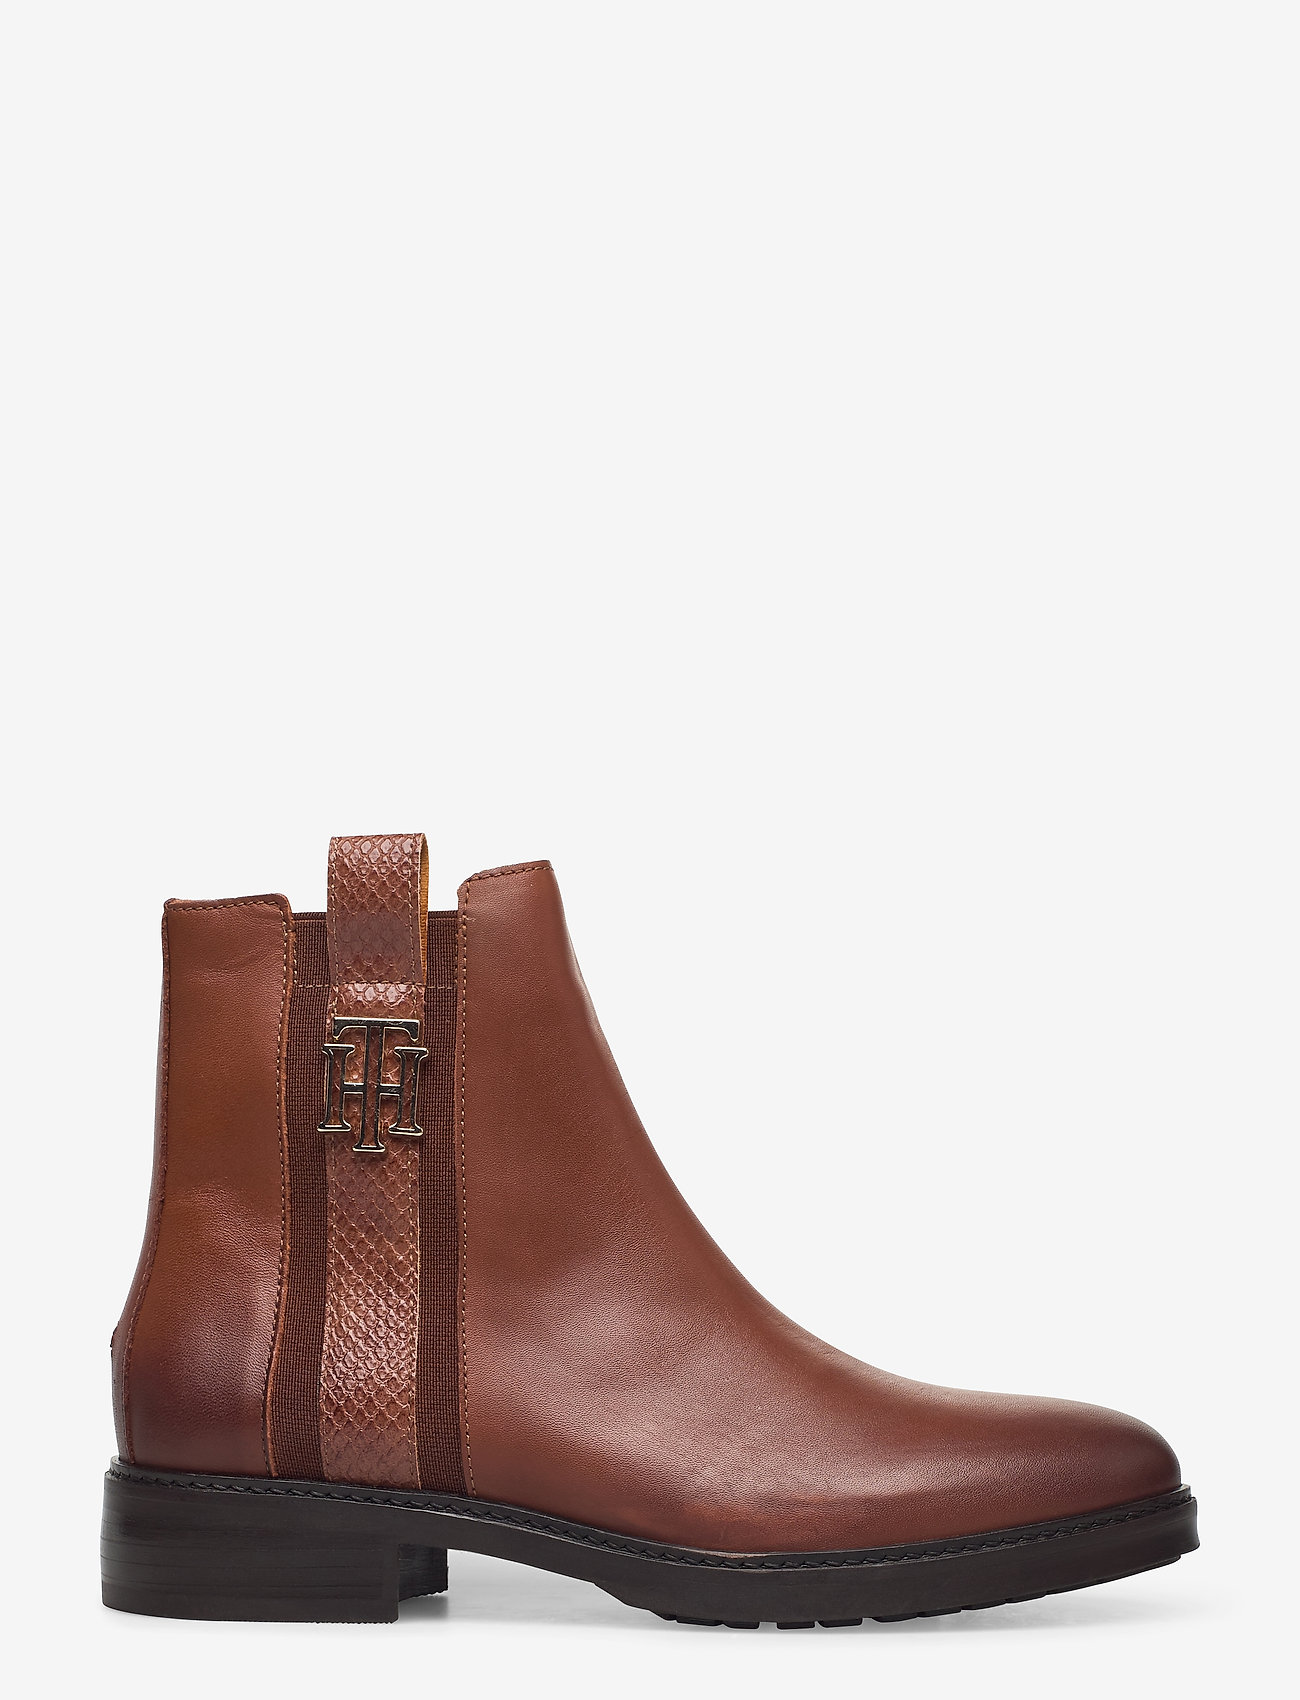 Tommy Hilfiger - TH INTERLOCK LEATHER FLAT BOOT - flat ankle boots - pumpkin paradise - 1